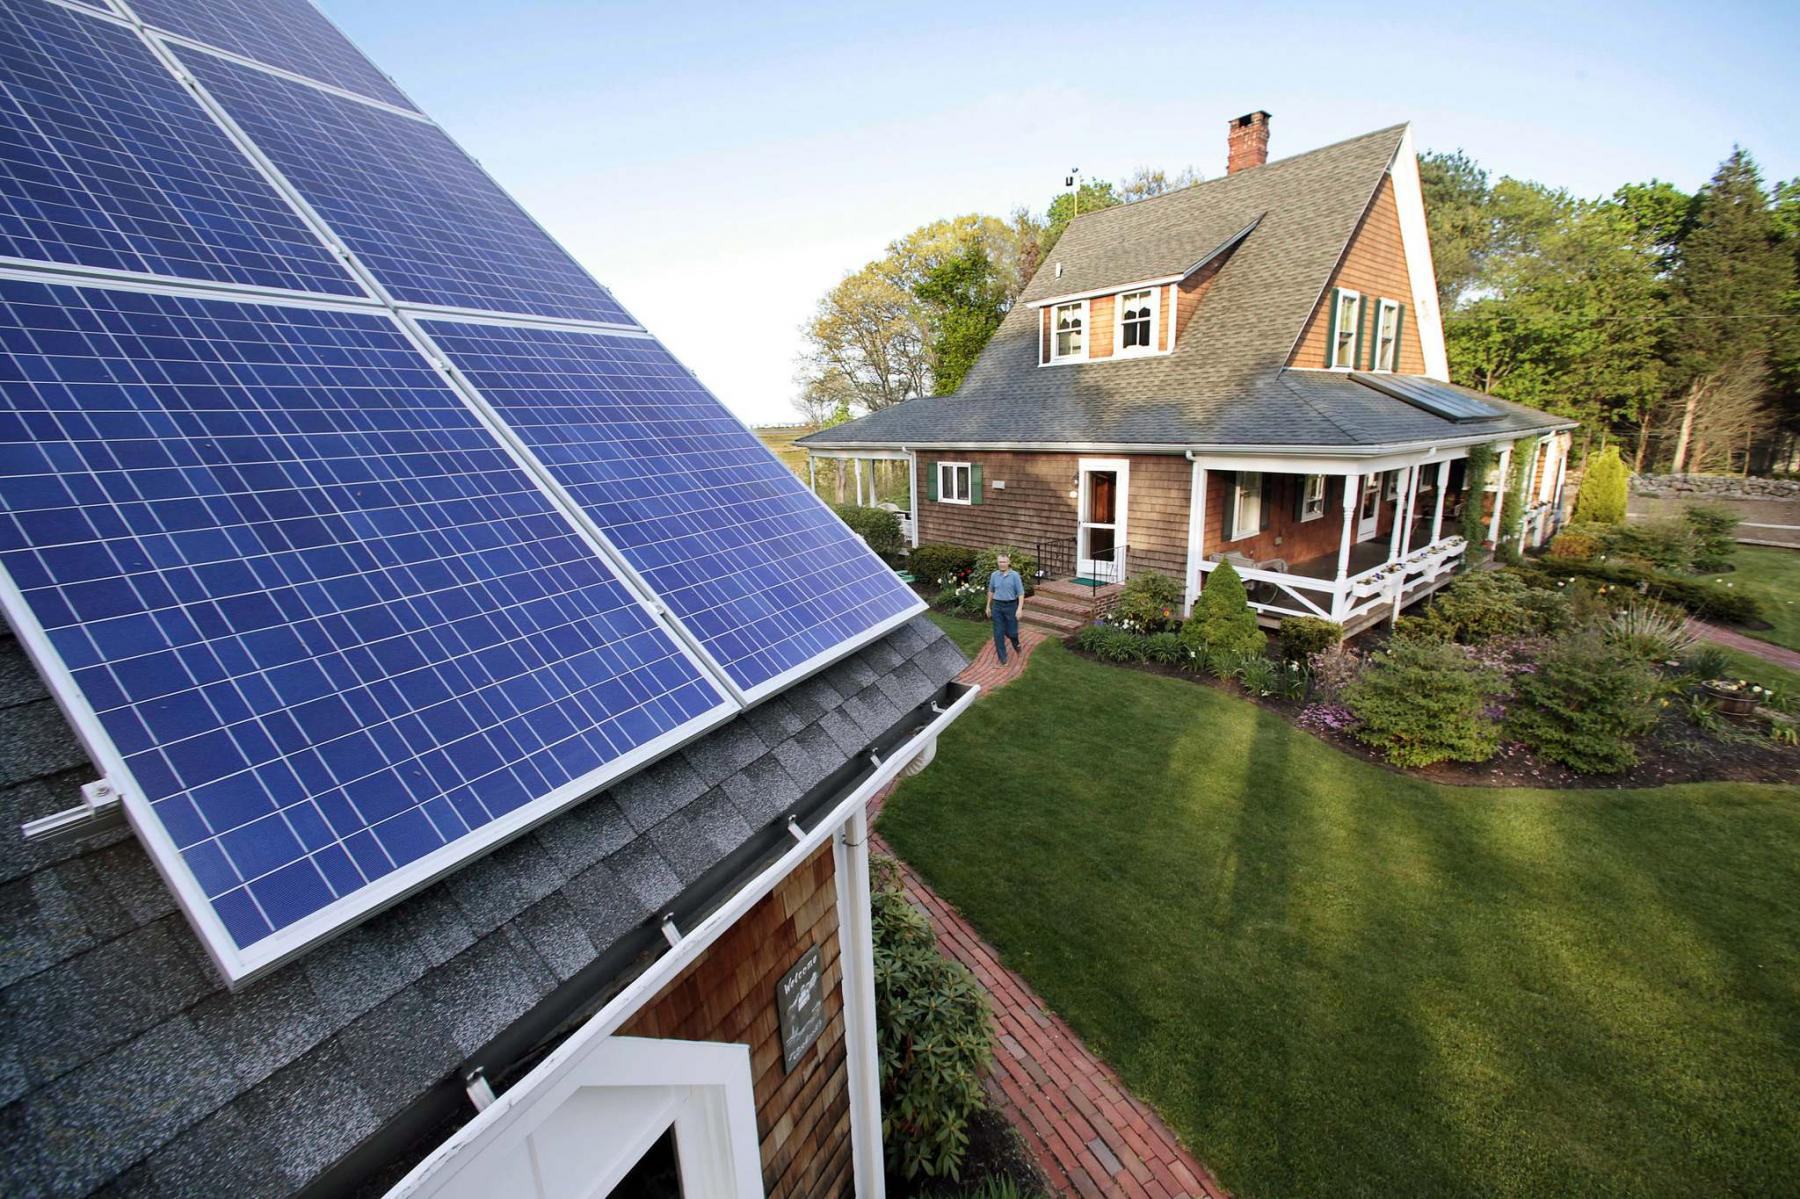 <p>Stephan Savoia / TRIBUNE files</p><p>Fitting your roof with solar panels can reduce your electricity bill by thousands of dollars over its 25-year lifespan.</p>